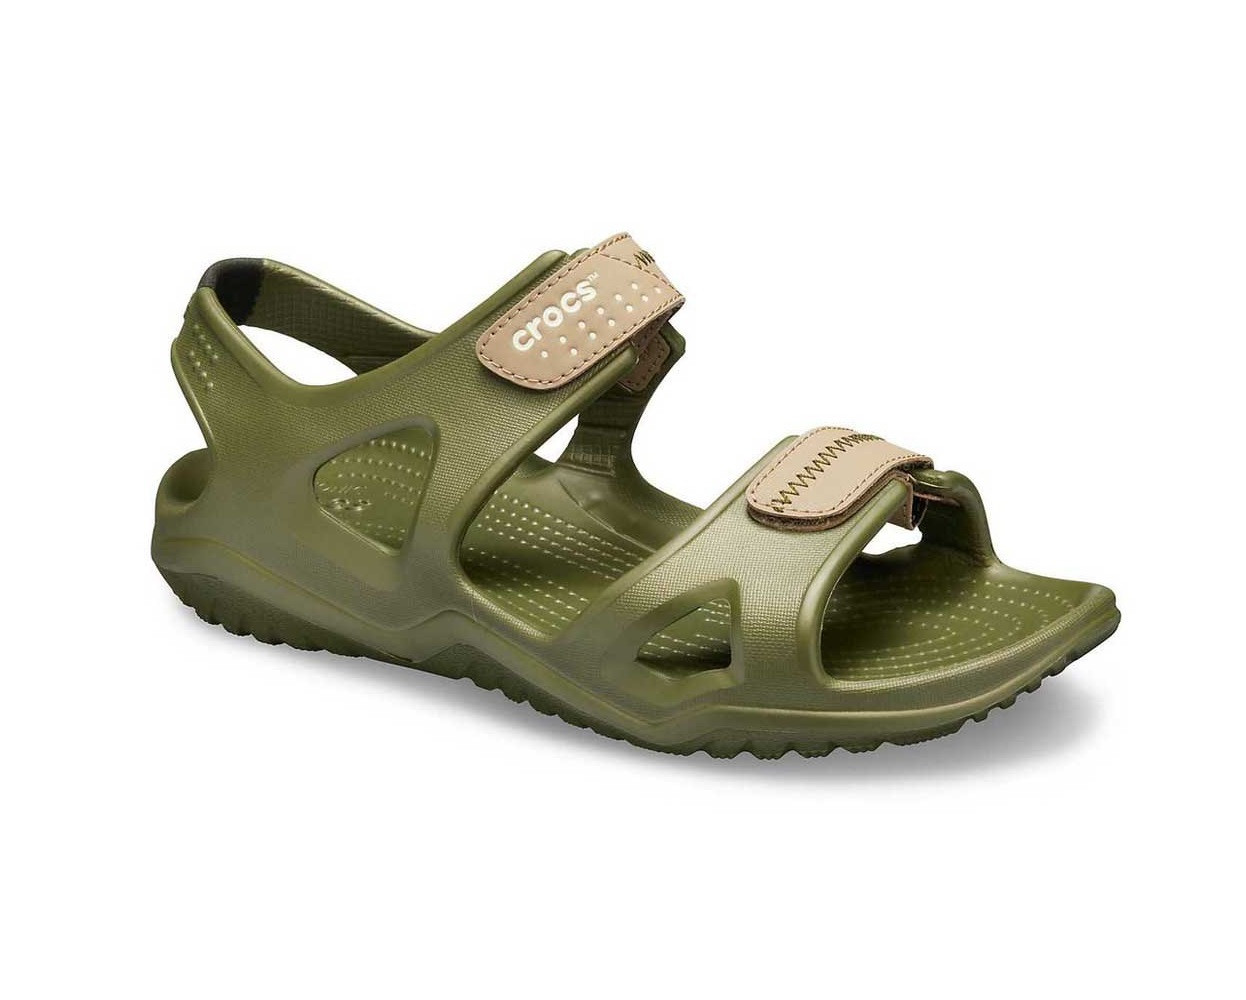 Men's CROCS Swiftwater™ River Sandal Army Green / Khaki Мужские Кроксы Сандалии